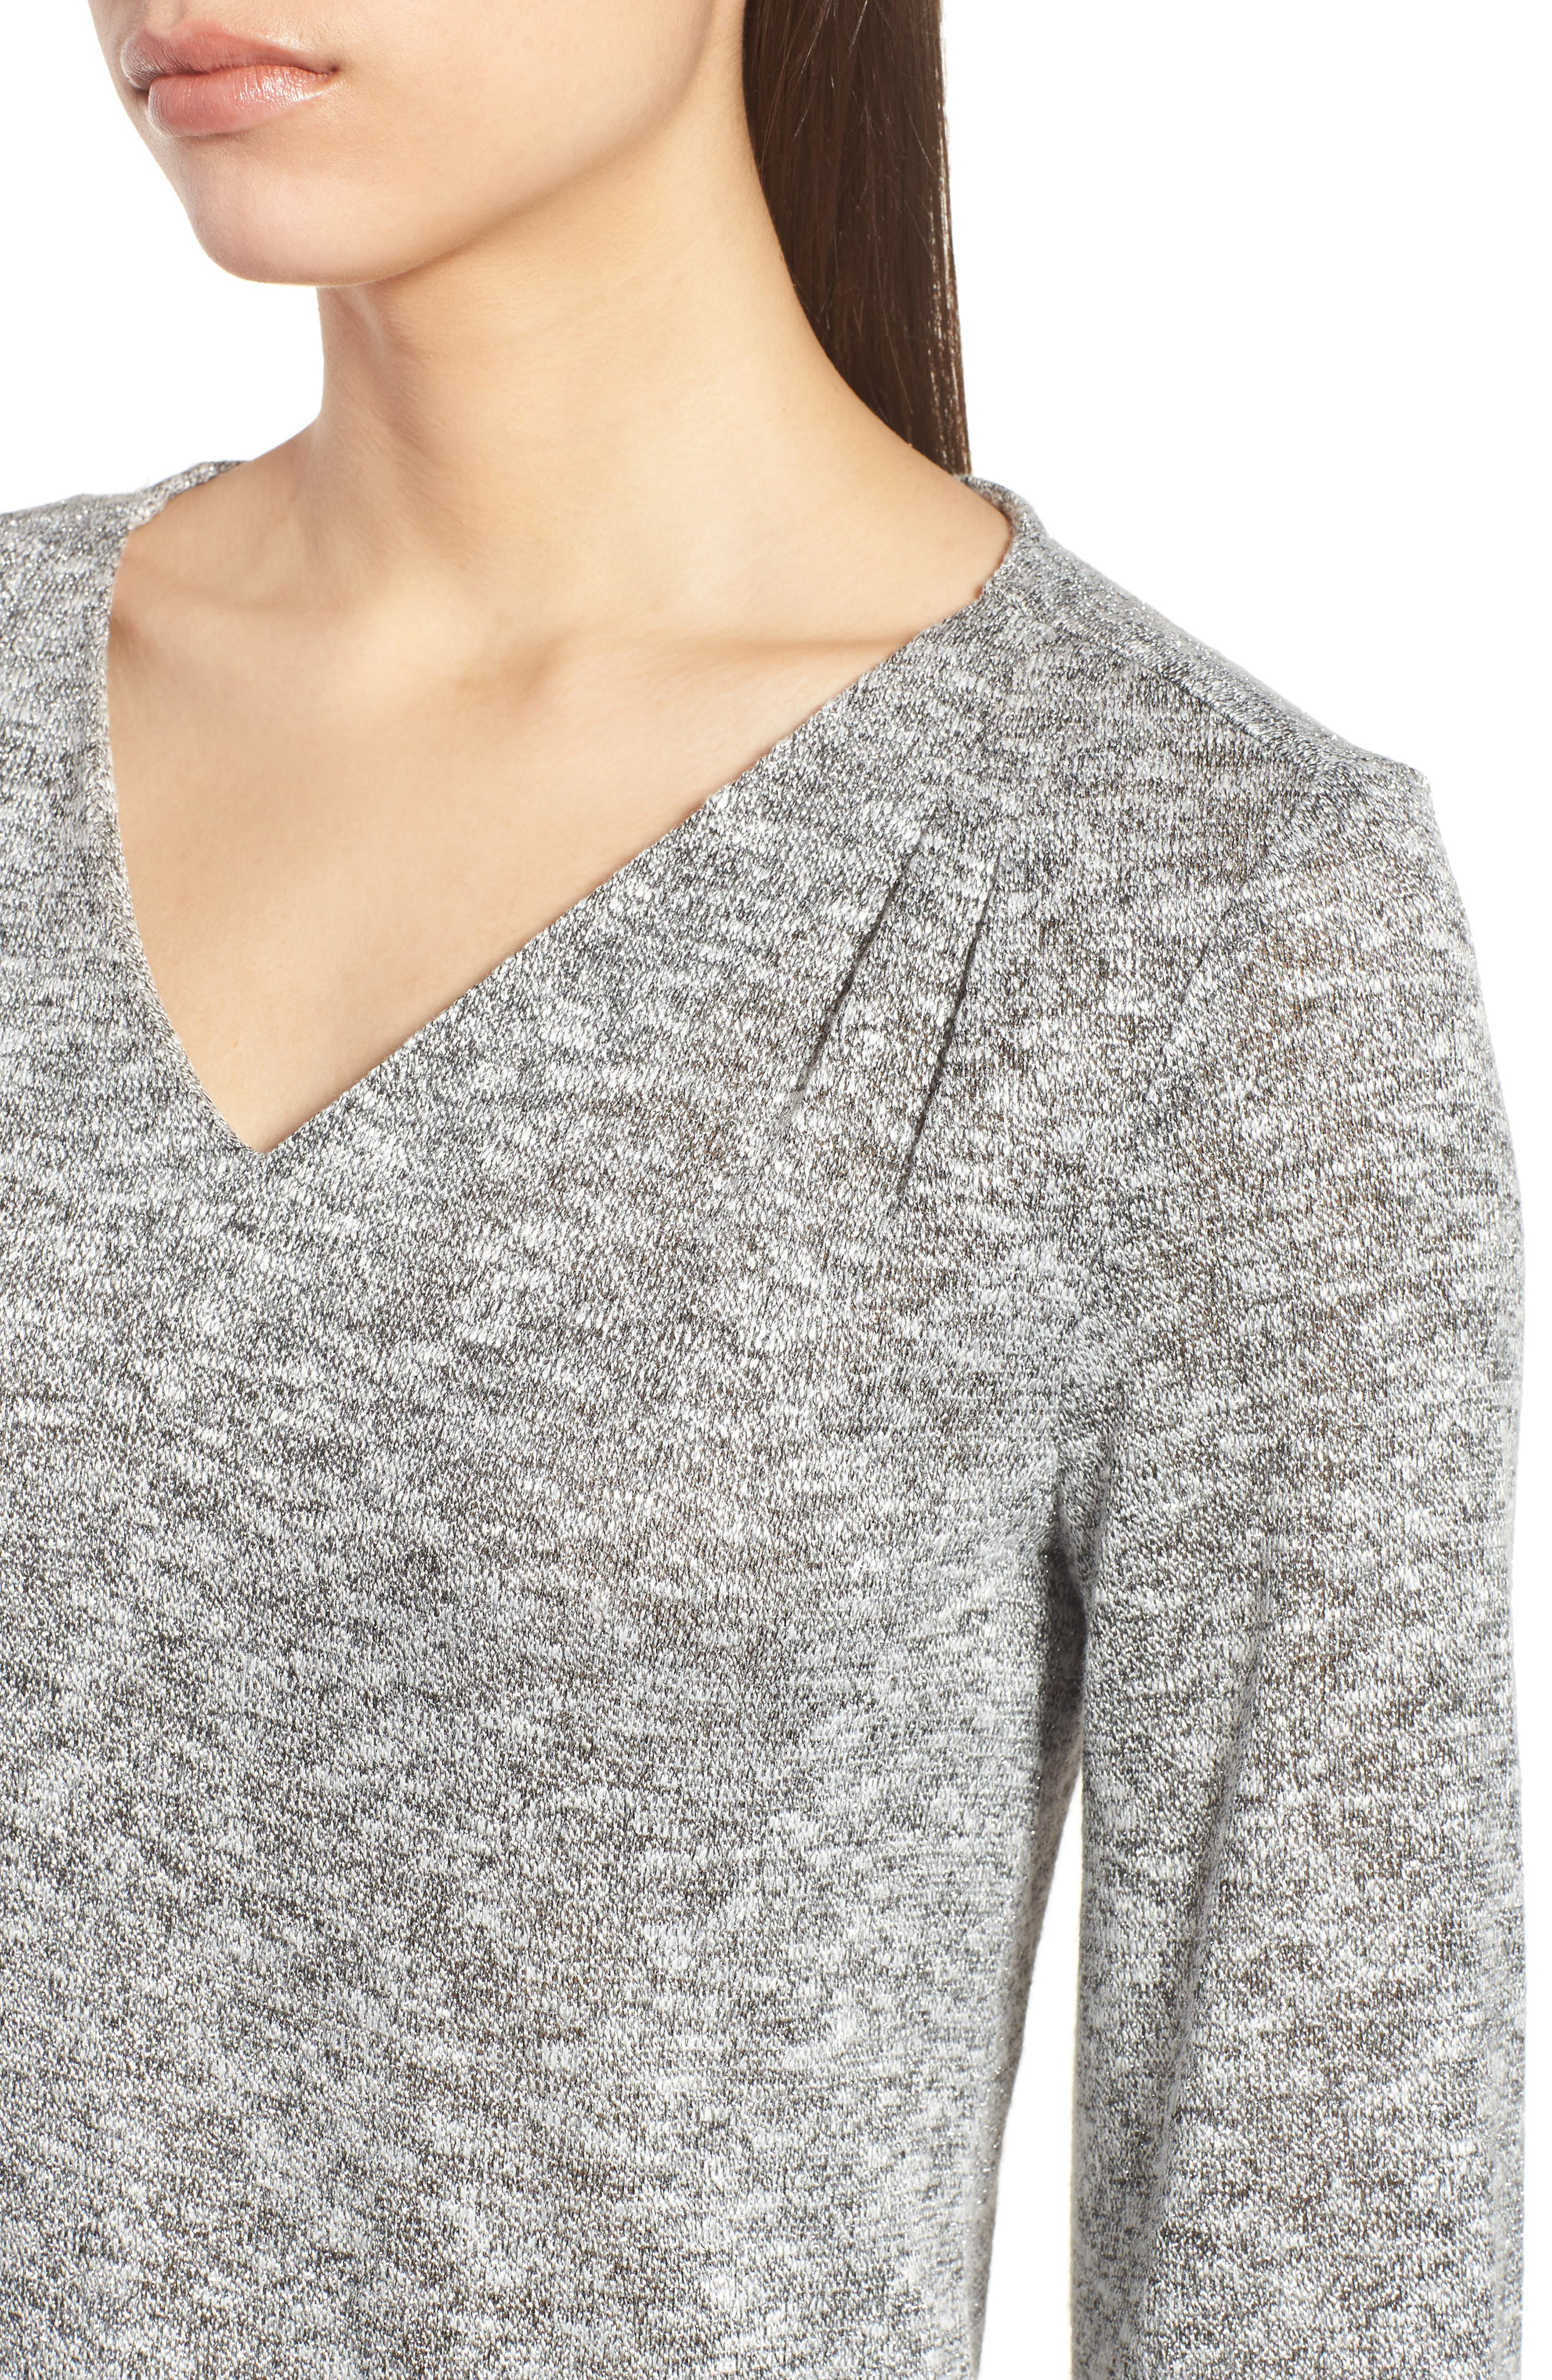 Sparkle Heathered V-Neck Top,                             Alternate thumbnail 4, color,                             050-Grey Heather